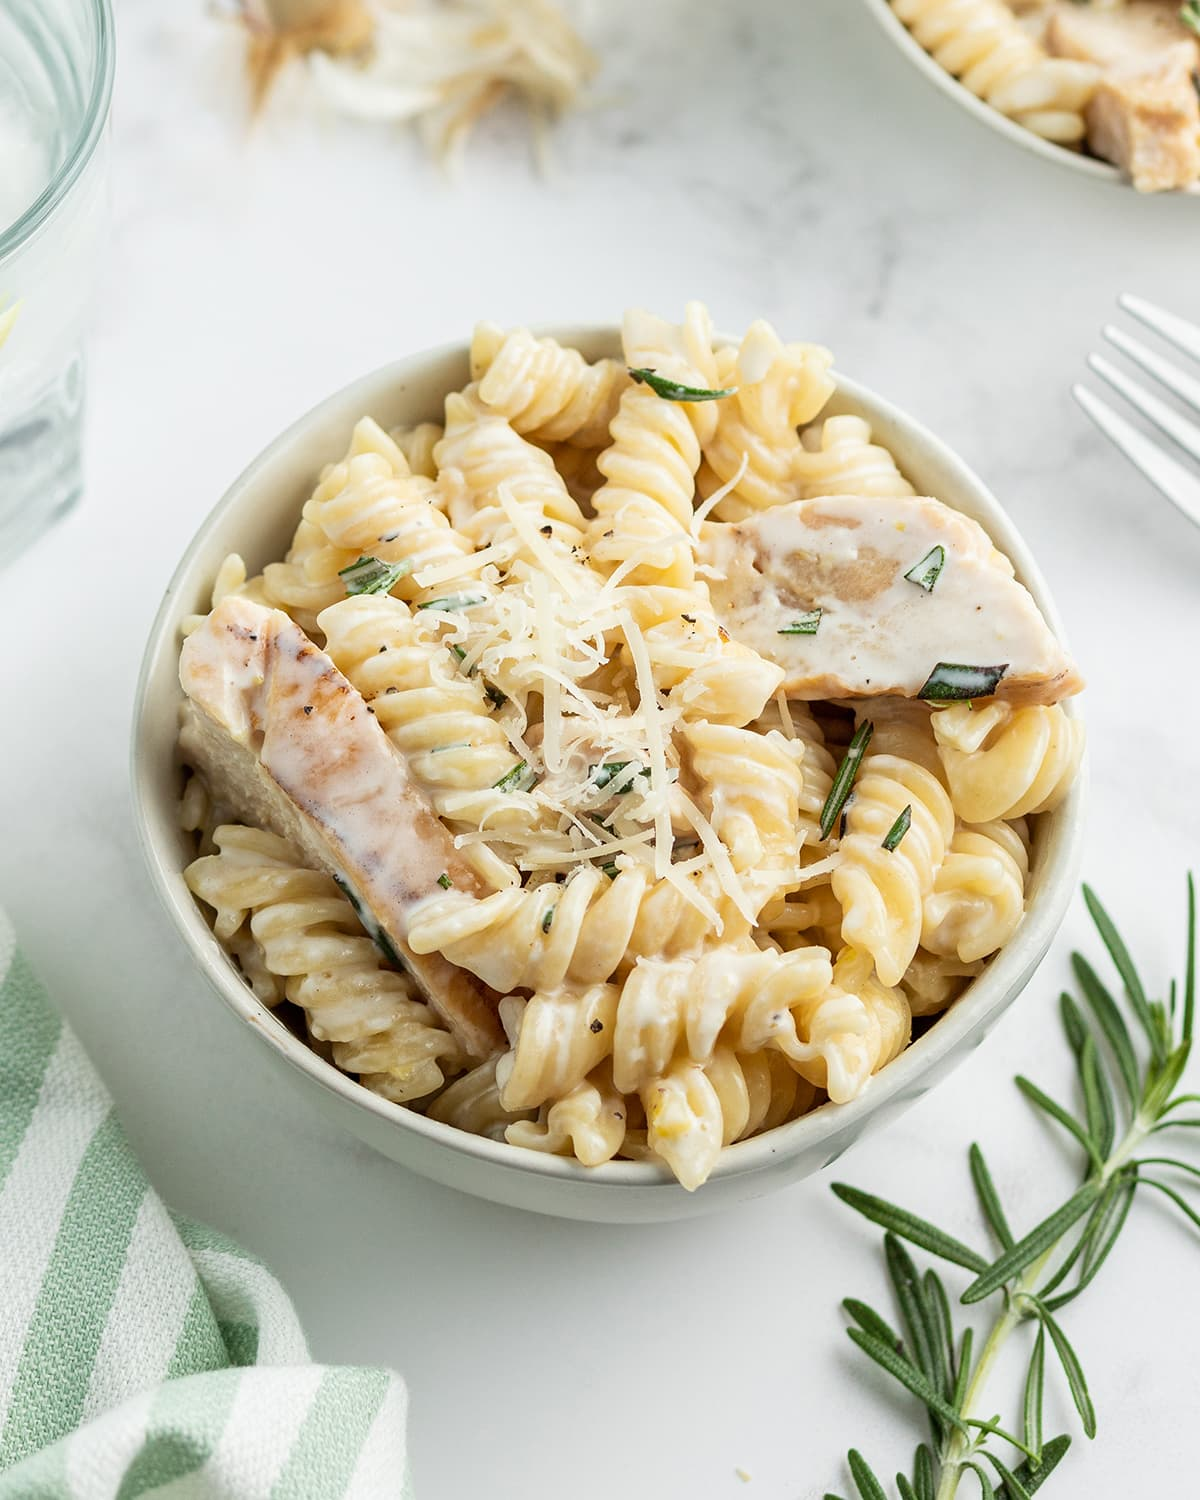 A bowl of lemon chicken pasta with a creamy white sauce, rotini pasta and chunks of grilled chicken, topped with shredded parmesan cheese.